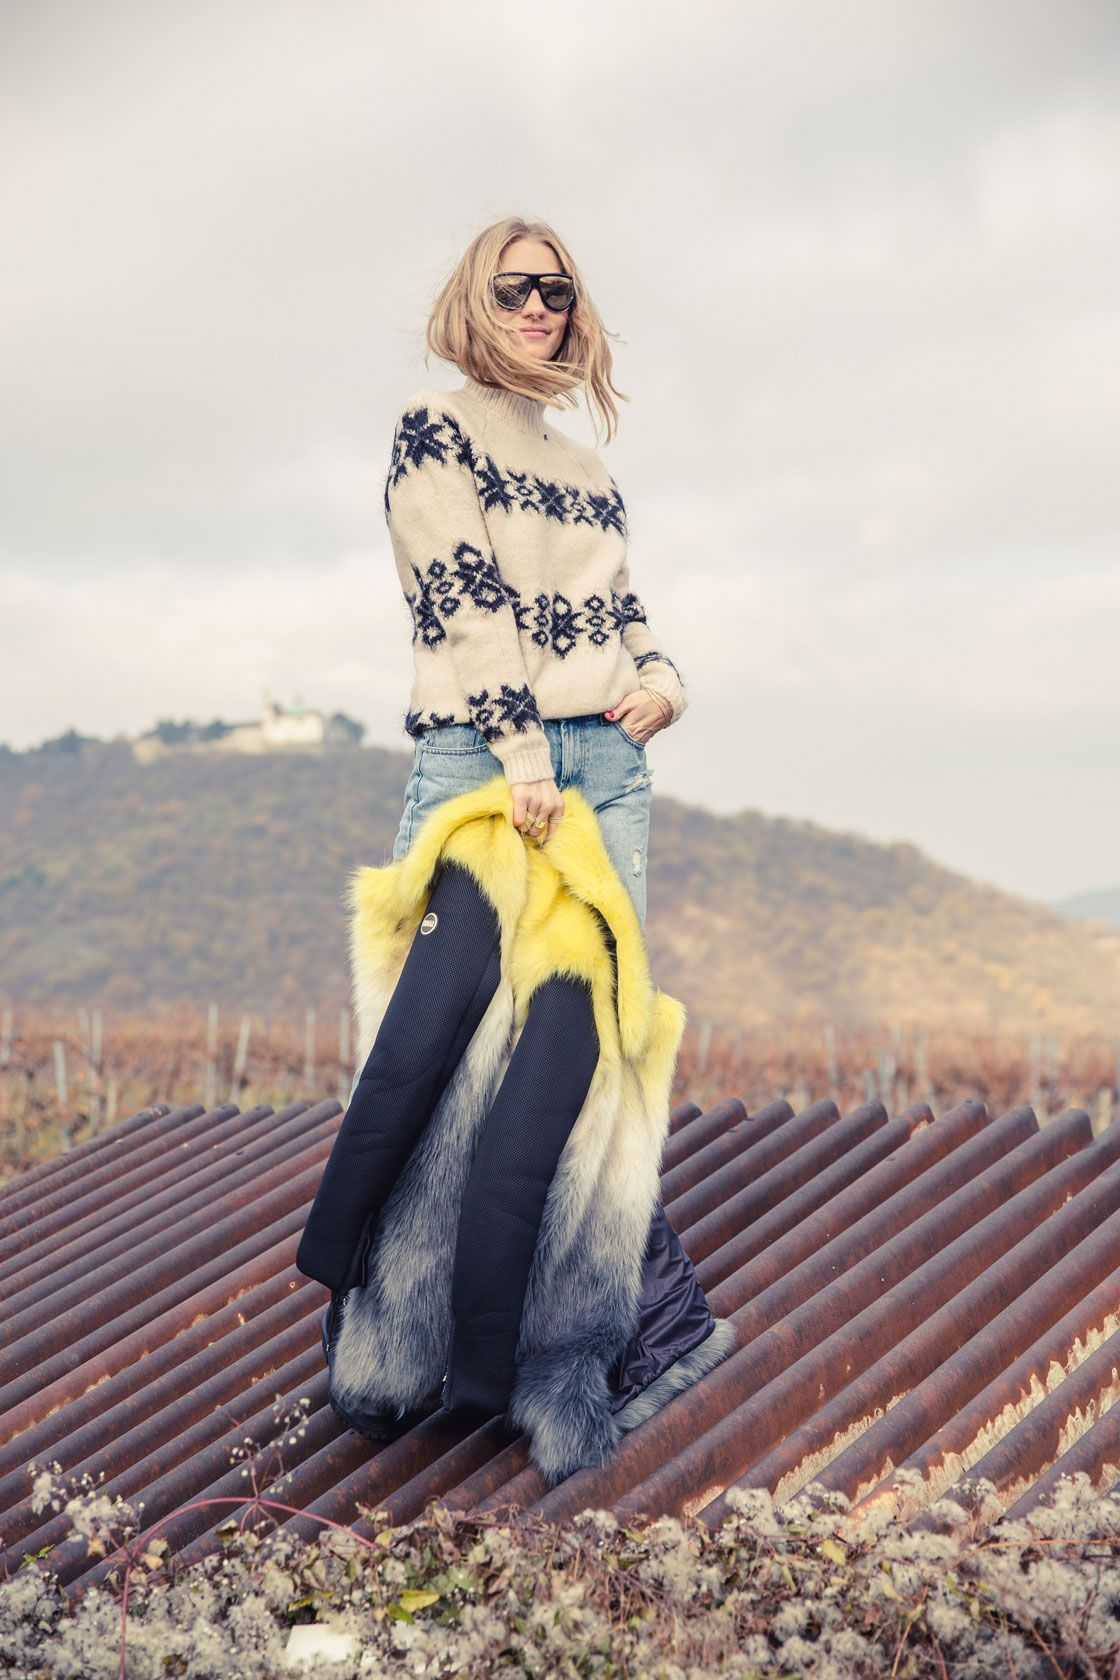 Ski Sunnies - POSCHSTYLE. Ivory printed sweater+boyfriend denim+black army style boots+black and yellow fur coat+sunglasses. Fall Outfit 2016